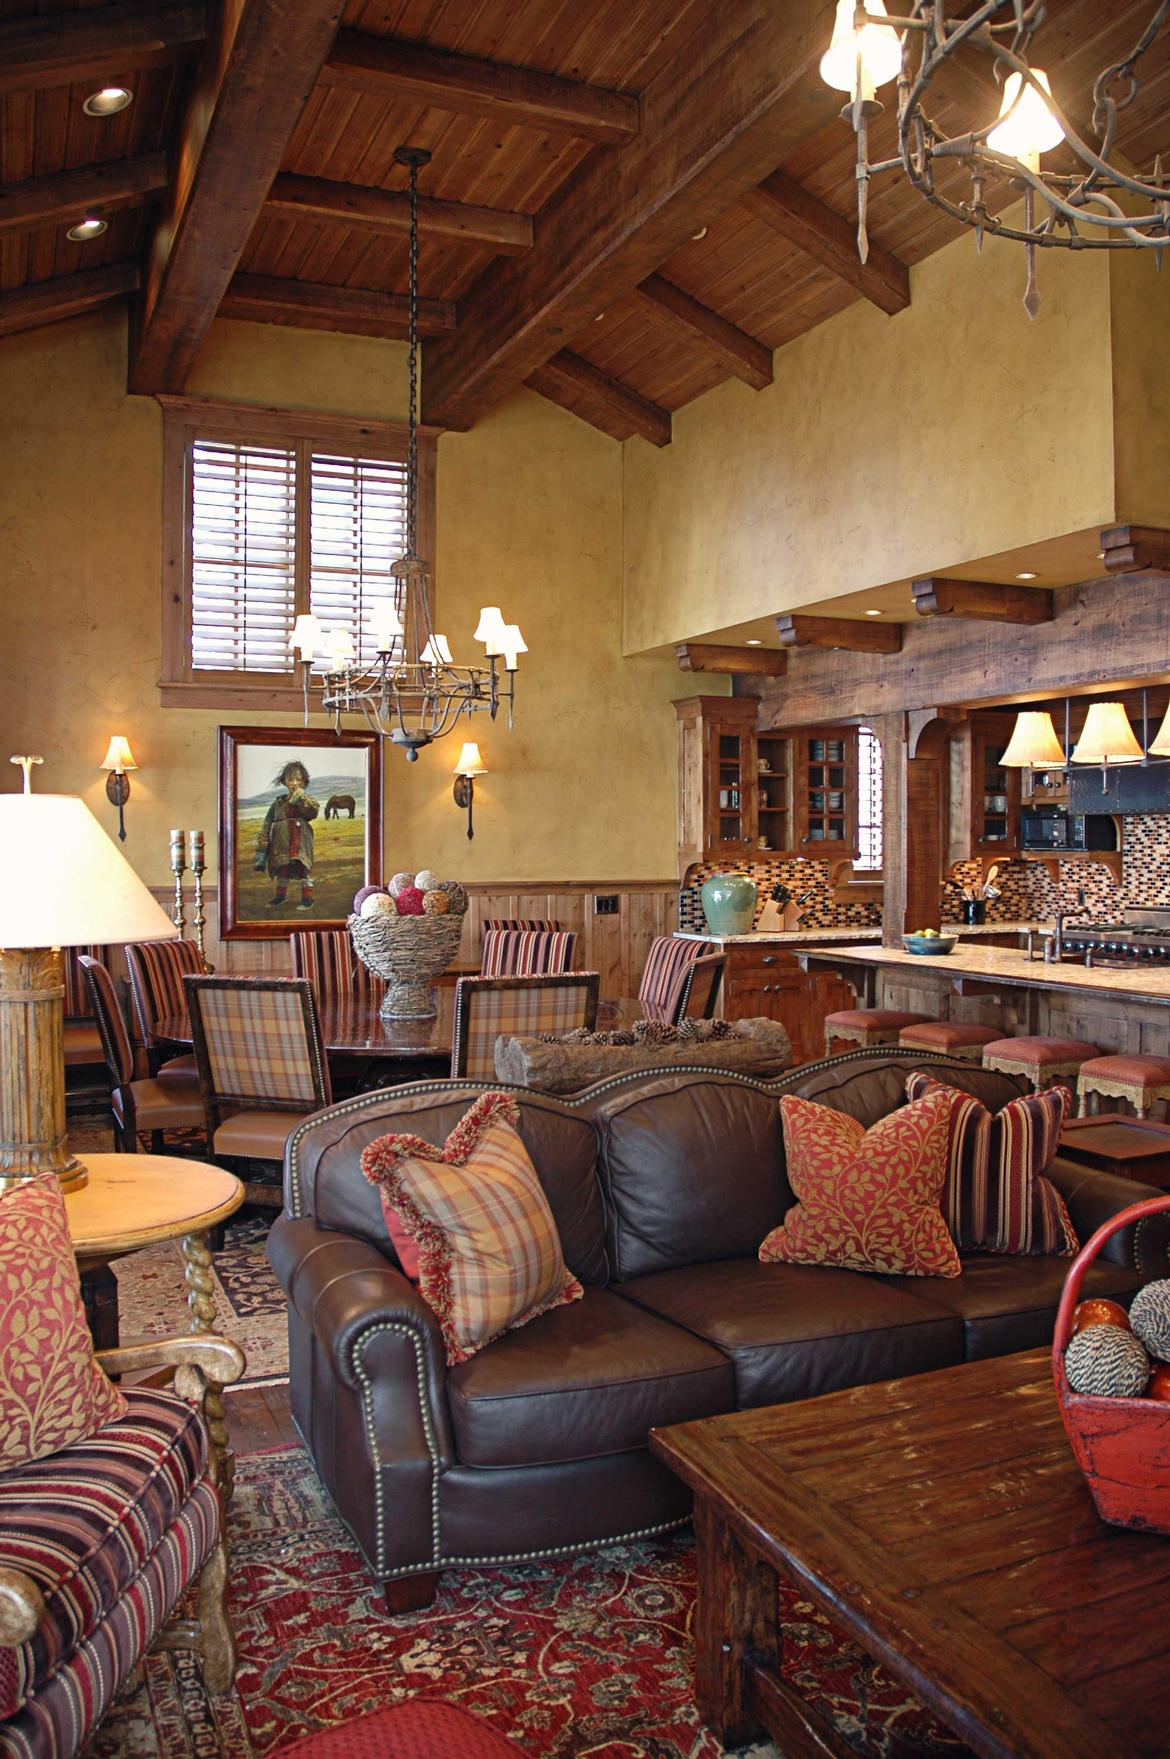 Western decorating ideas for living rooms magnificent home design for Western decorating ideas for living rooms